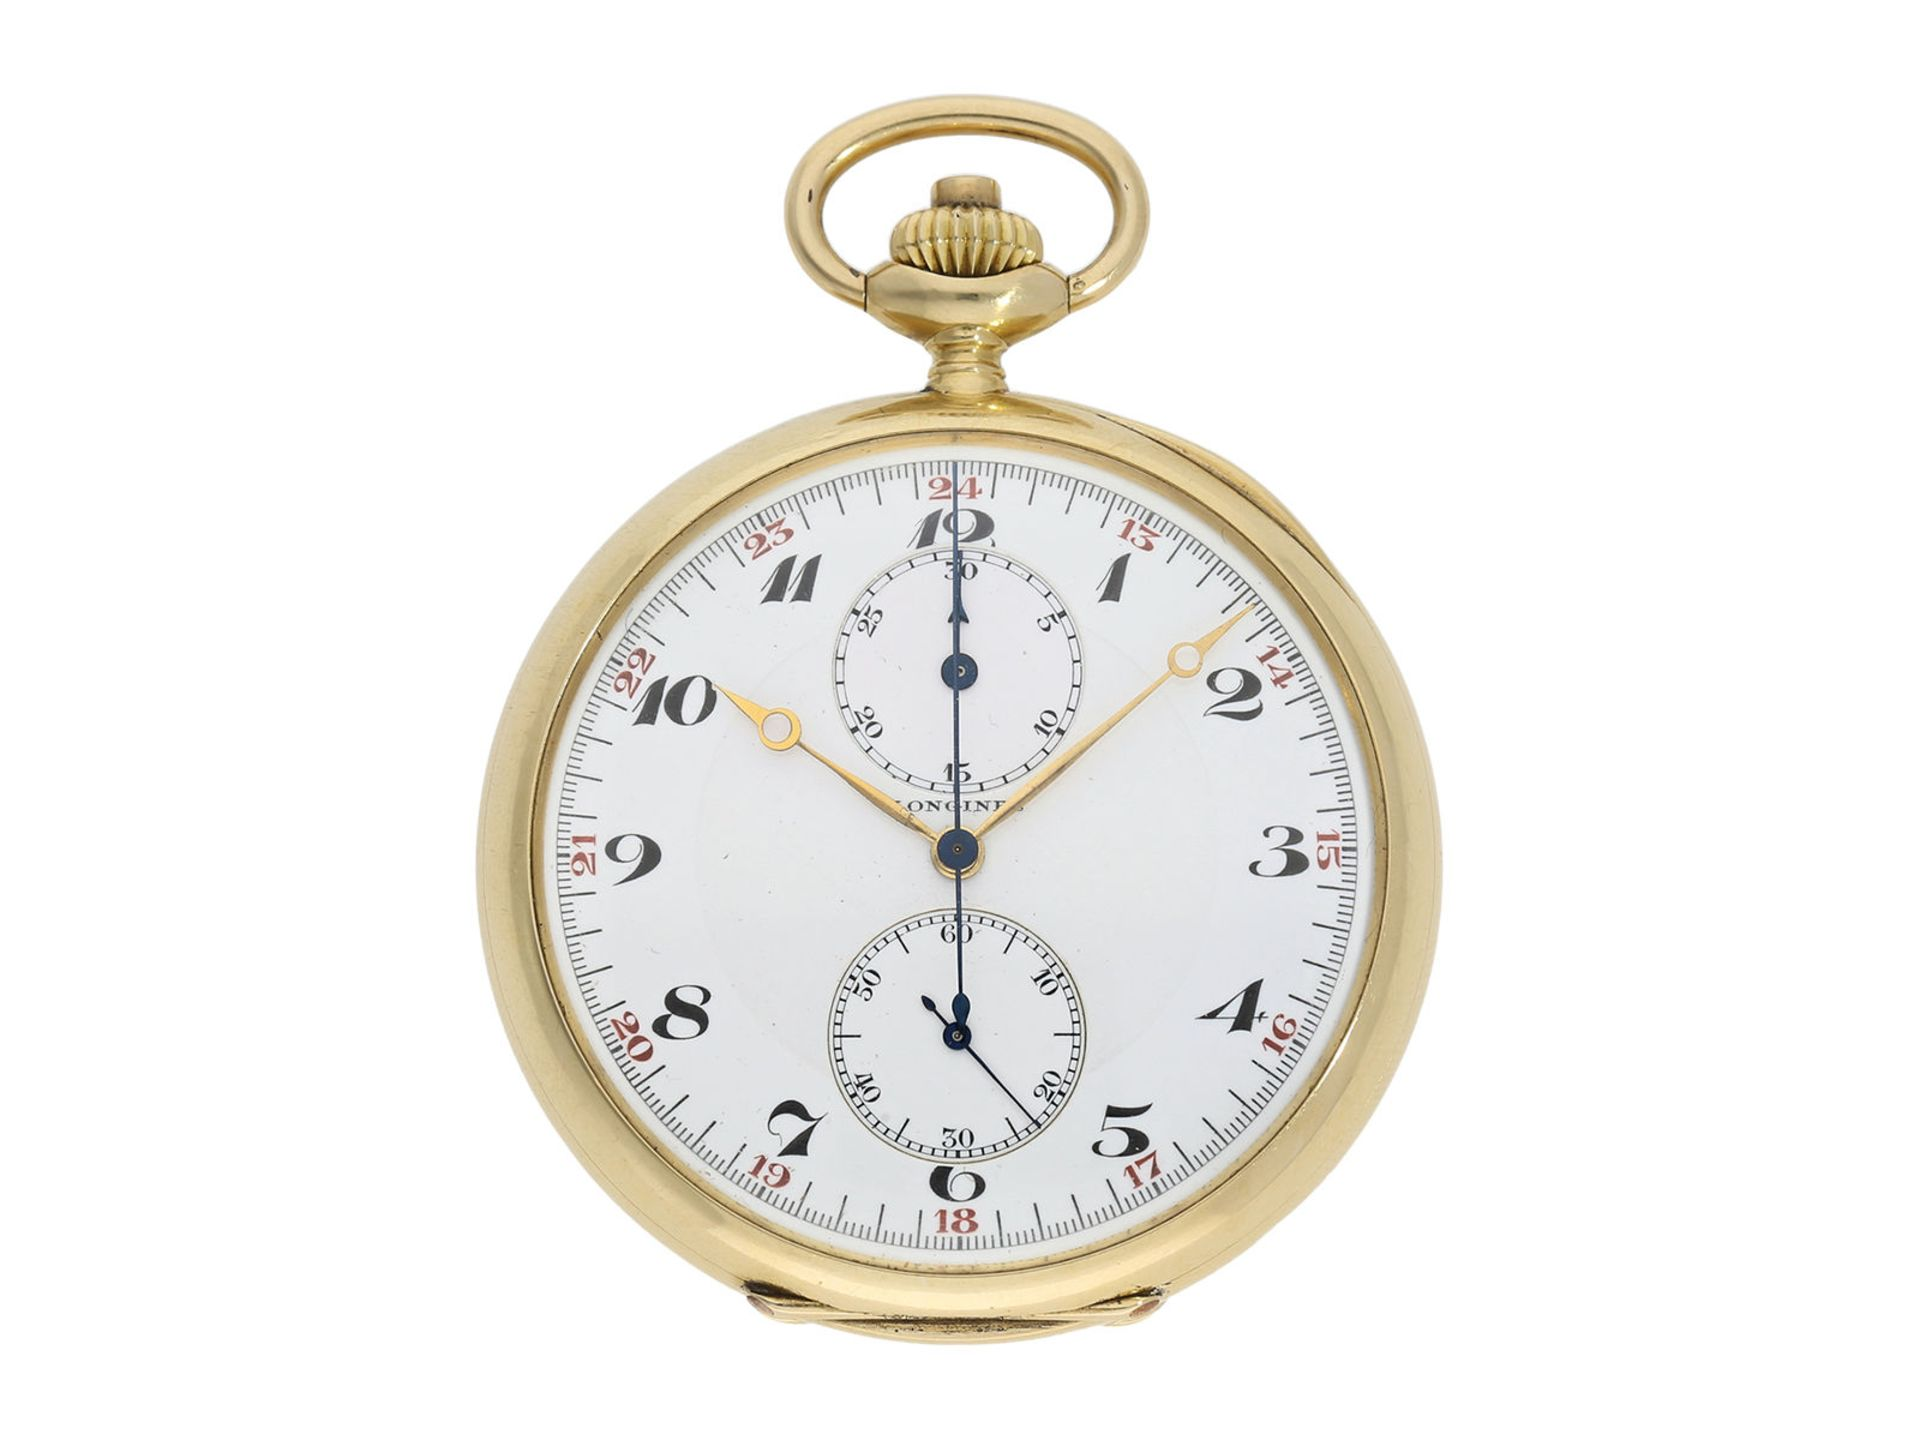 "Pocket watch: high-quality crown pusher chronograph ""Compteur"" in 18K gold, Longines ca. 1925Ca."